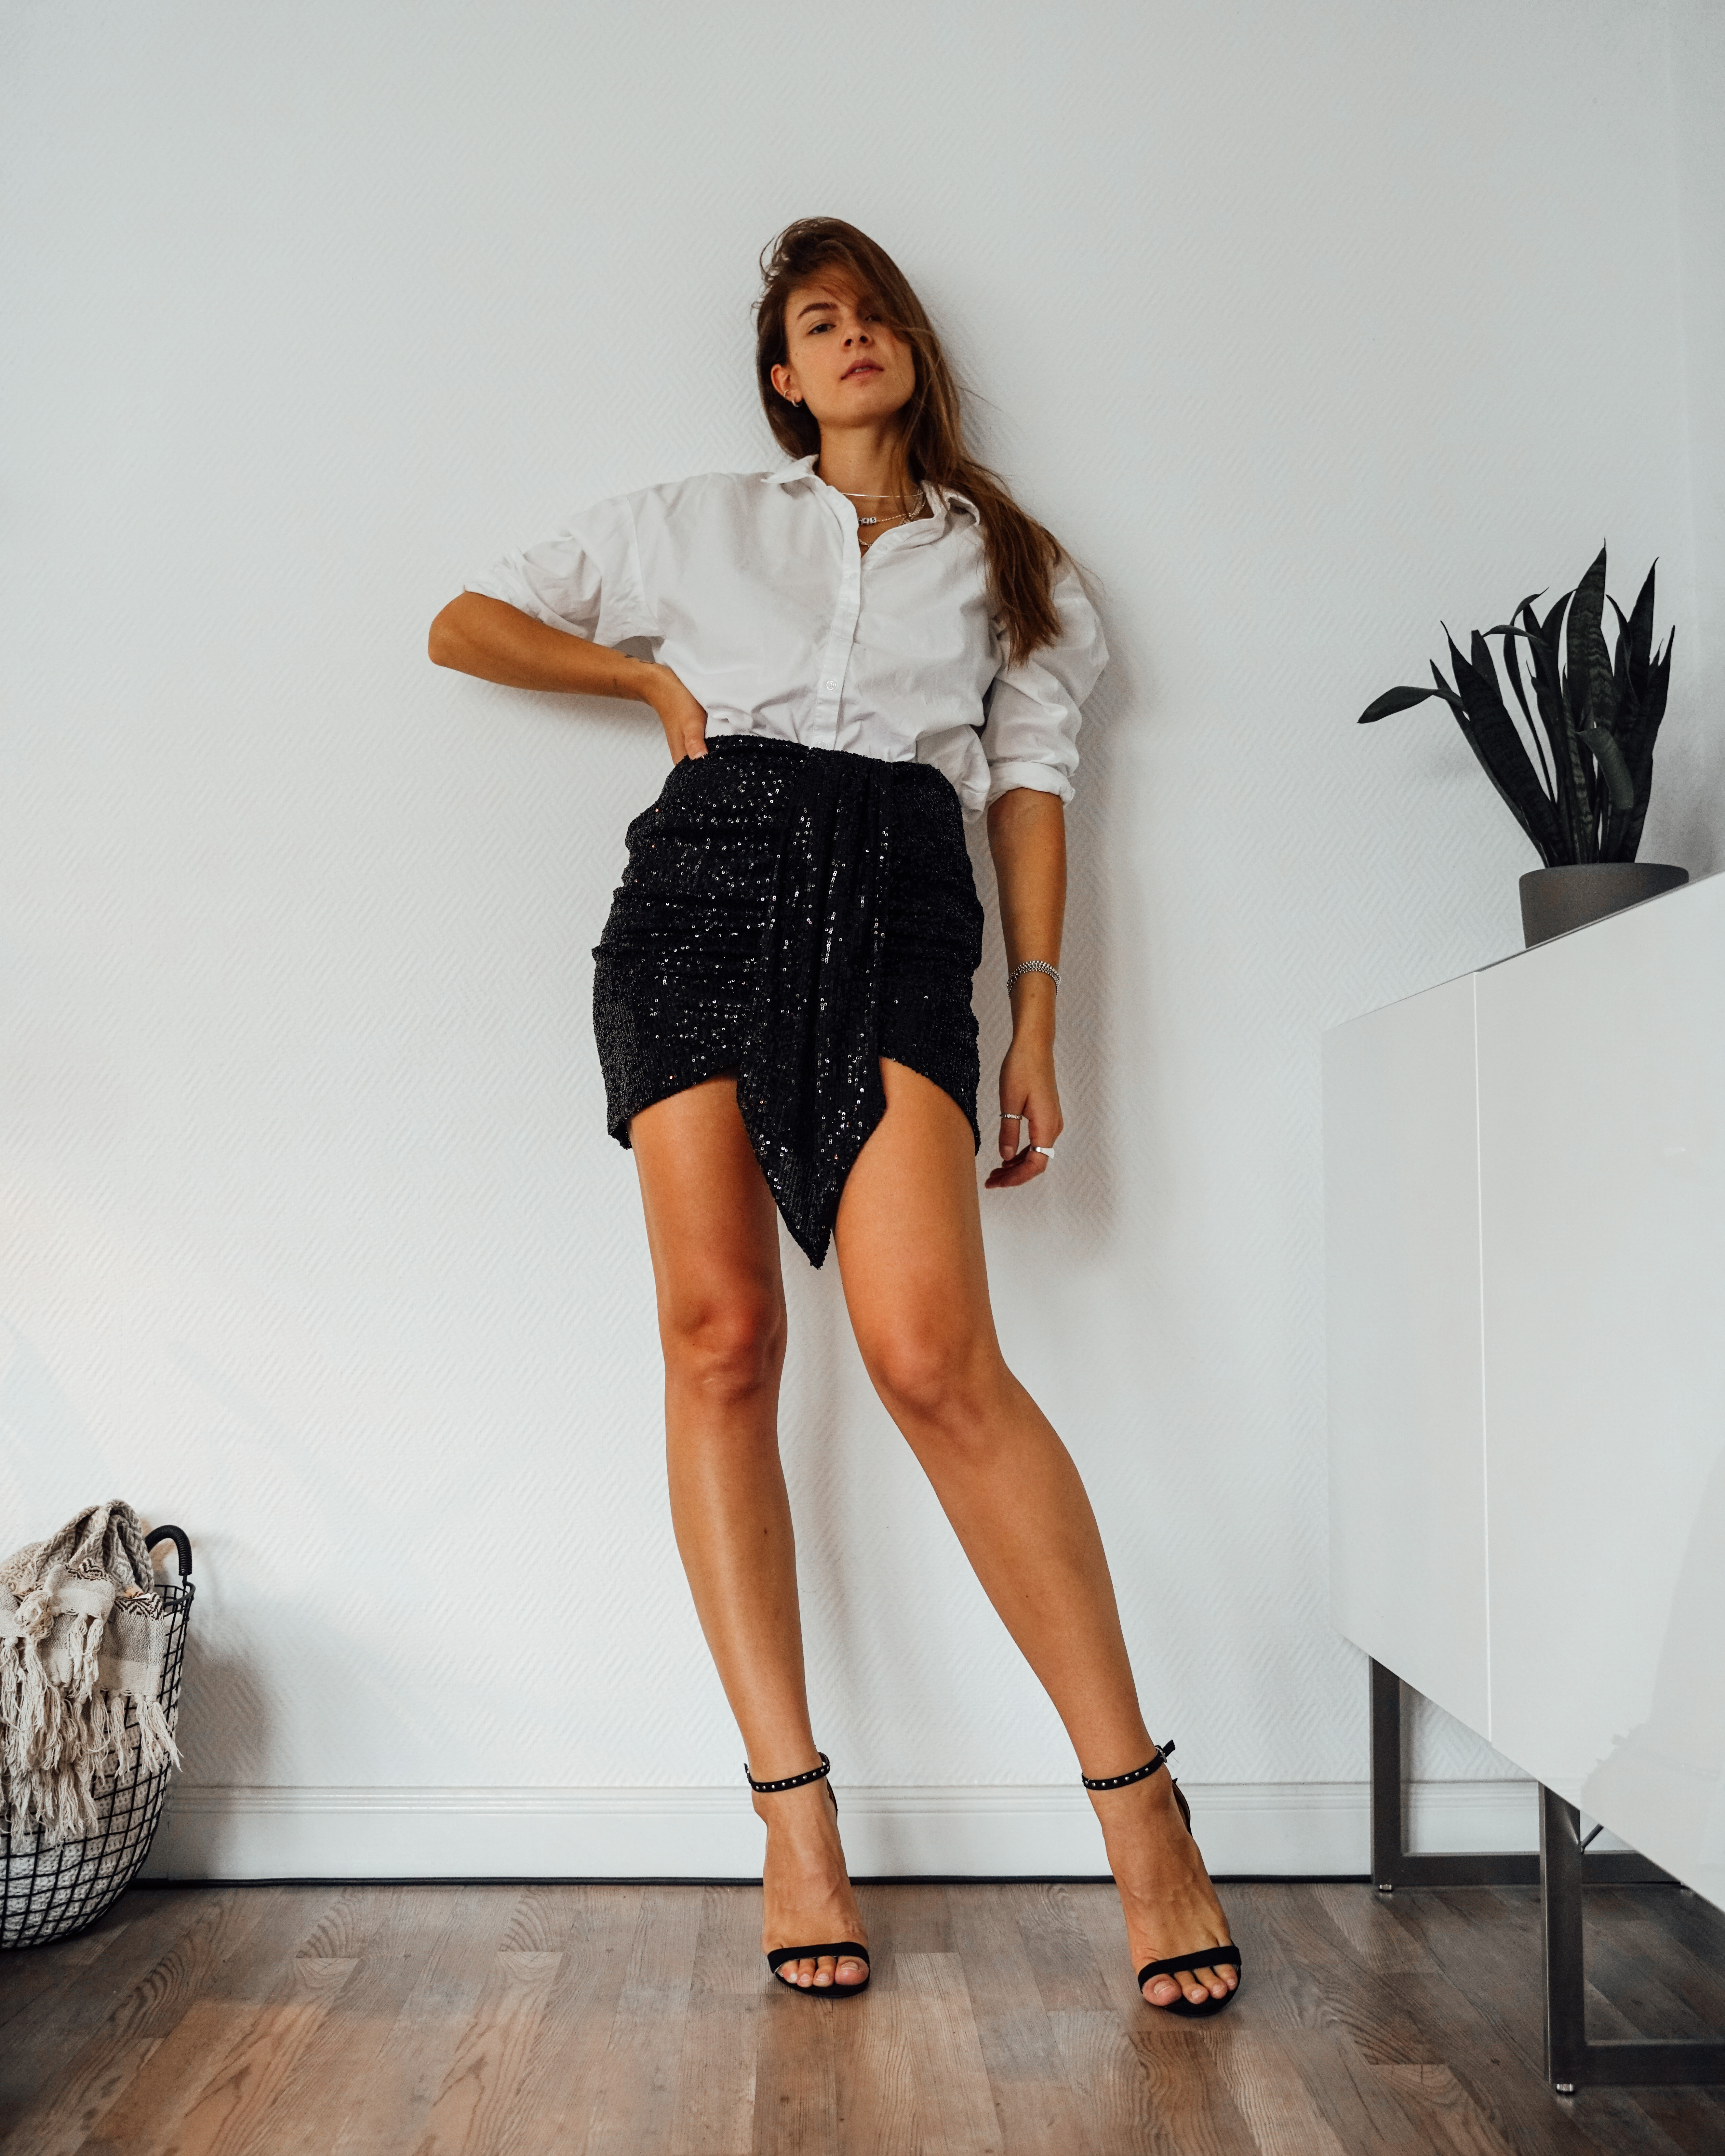 Party Outfit Ideas for New Year's Eve    NYE Outfits    Fashionblog Berlin